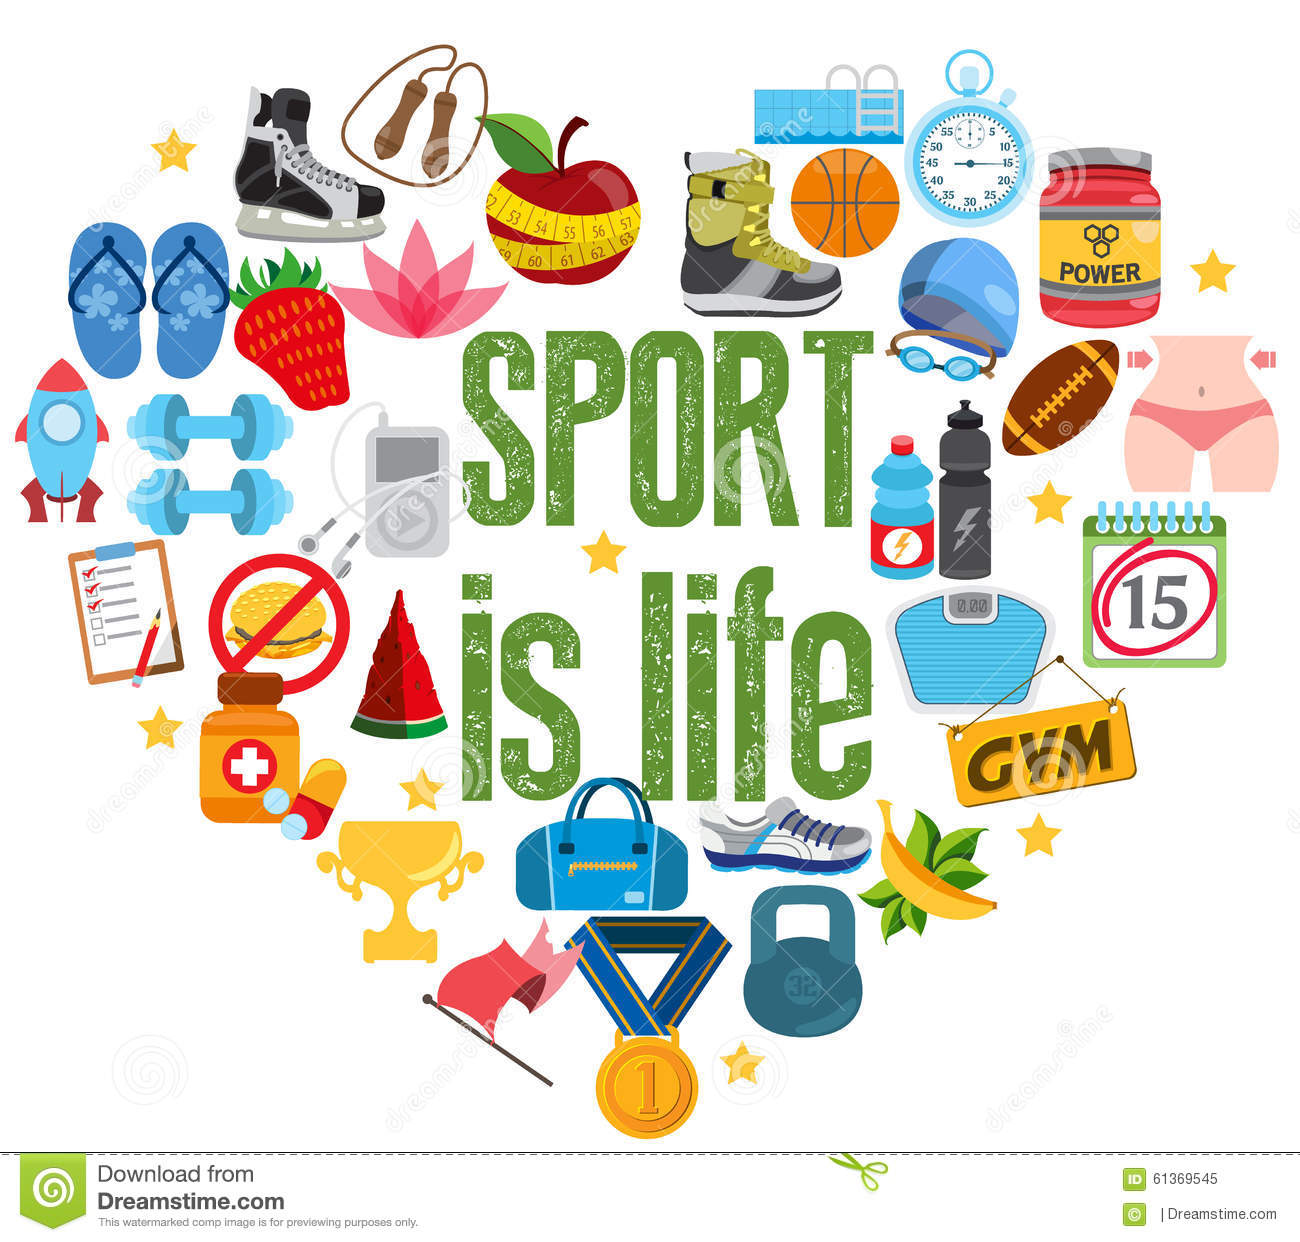 sports is life Get the latest michigan local news, sports news & us breaking news view daily mi weather updates, watch videos and photos, join the discussion in forums find more news articles and stories.